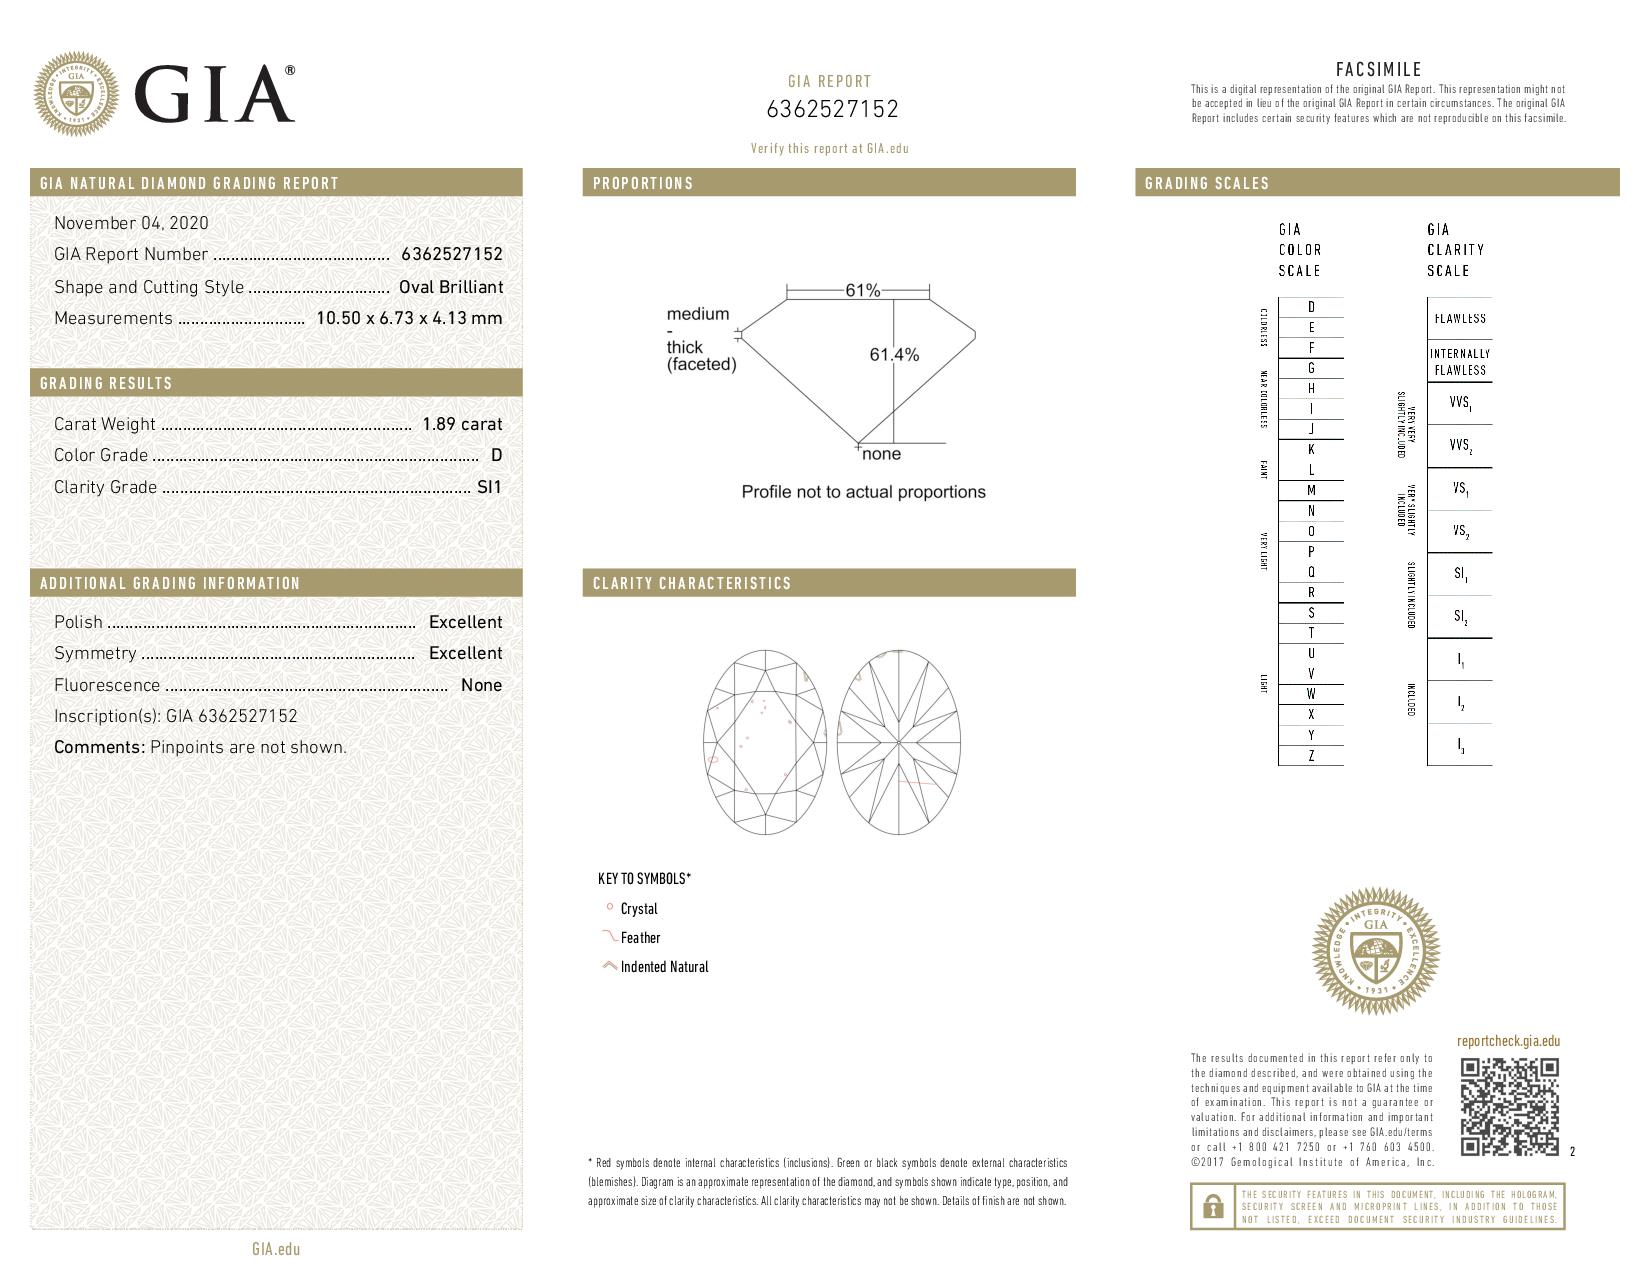 This is a 1.89 carat oval shape, D color, SI1 clarity natural diamond accompanied by a GIA grading report.